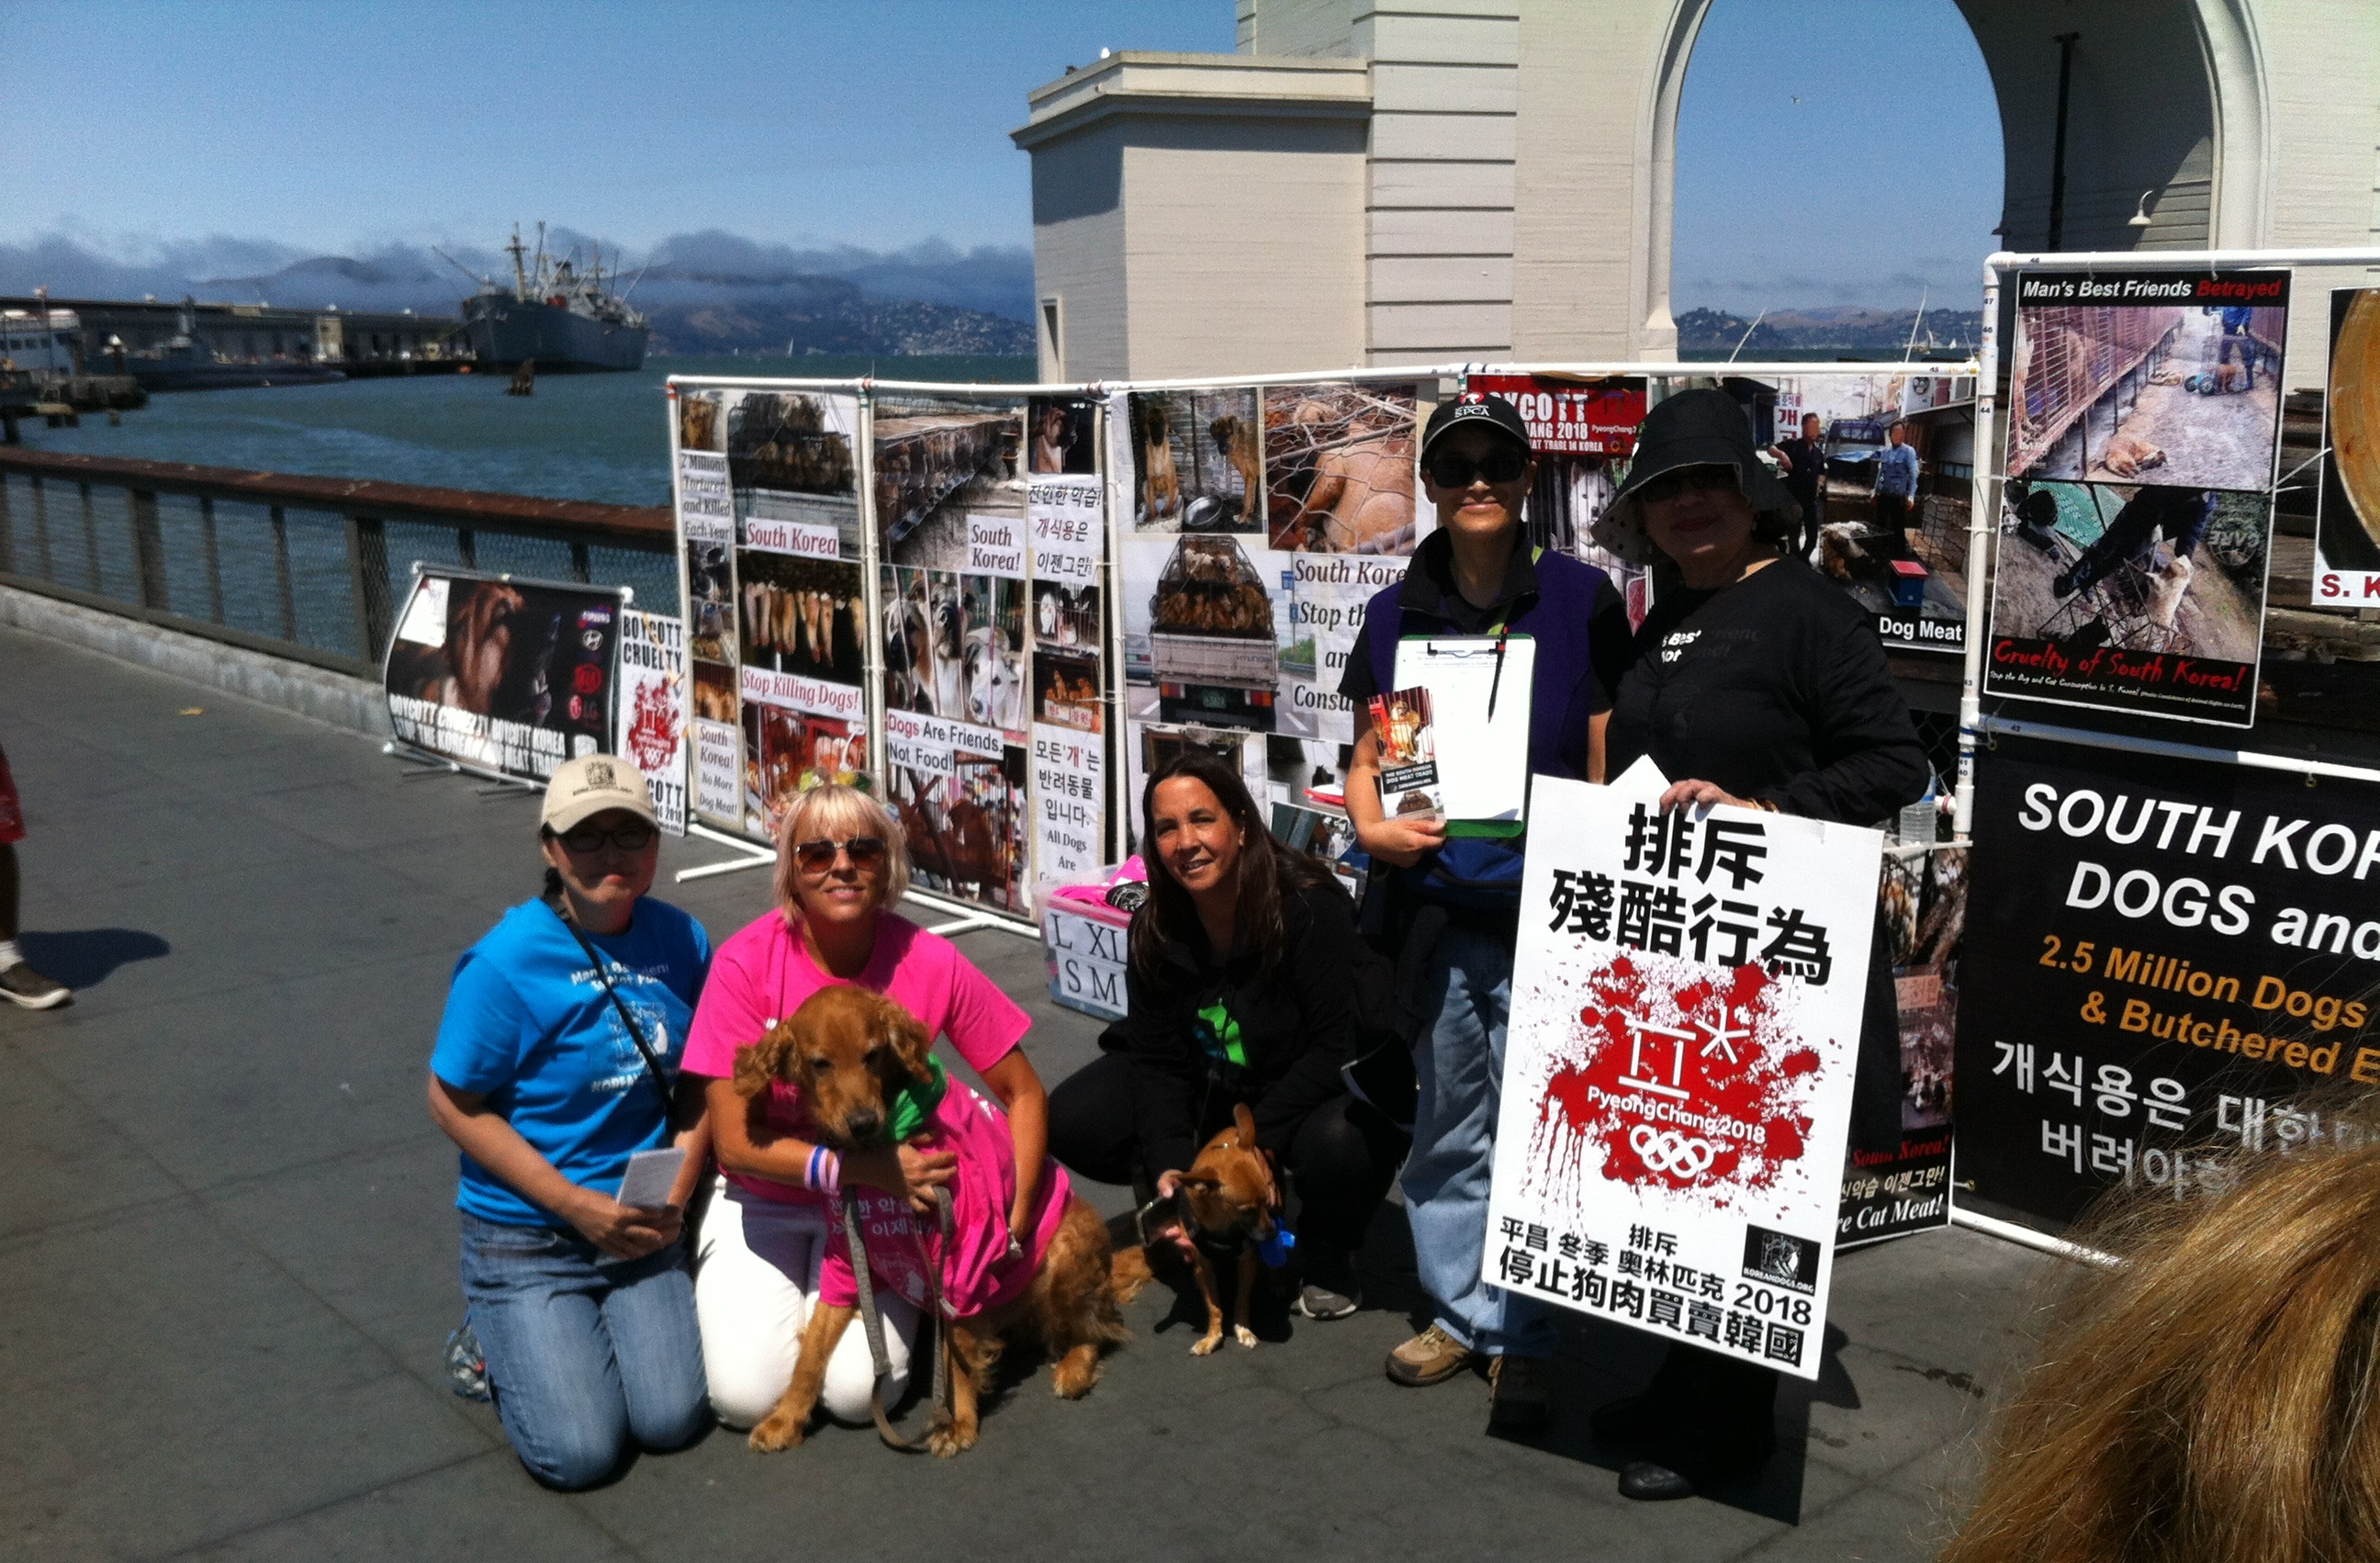 September 24, 2016 Saturday - Fisherman's Wharf, San Francisco, California. Leafleting and Informational Event on the South Korean Dog Meat Trade